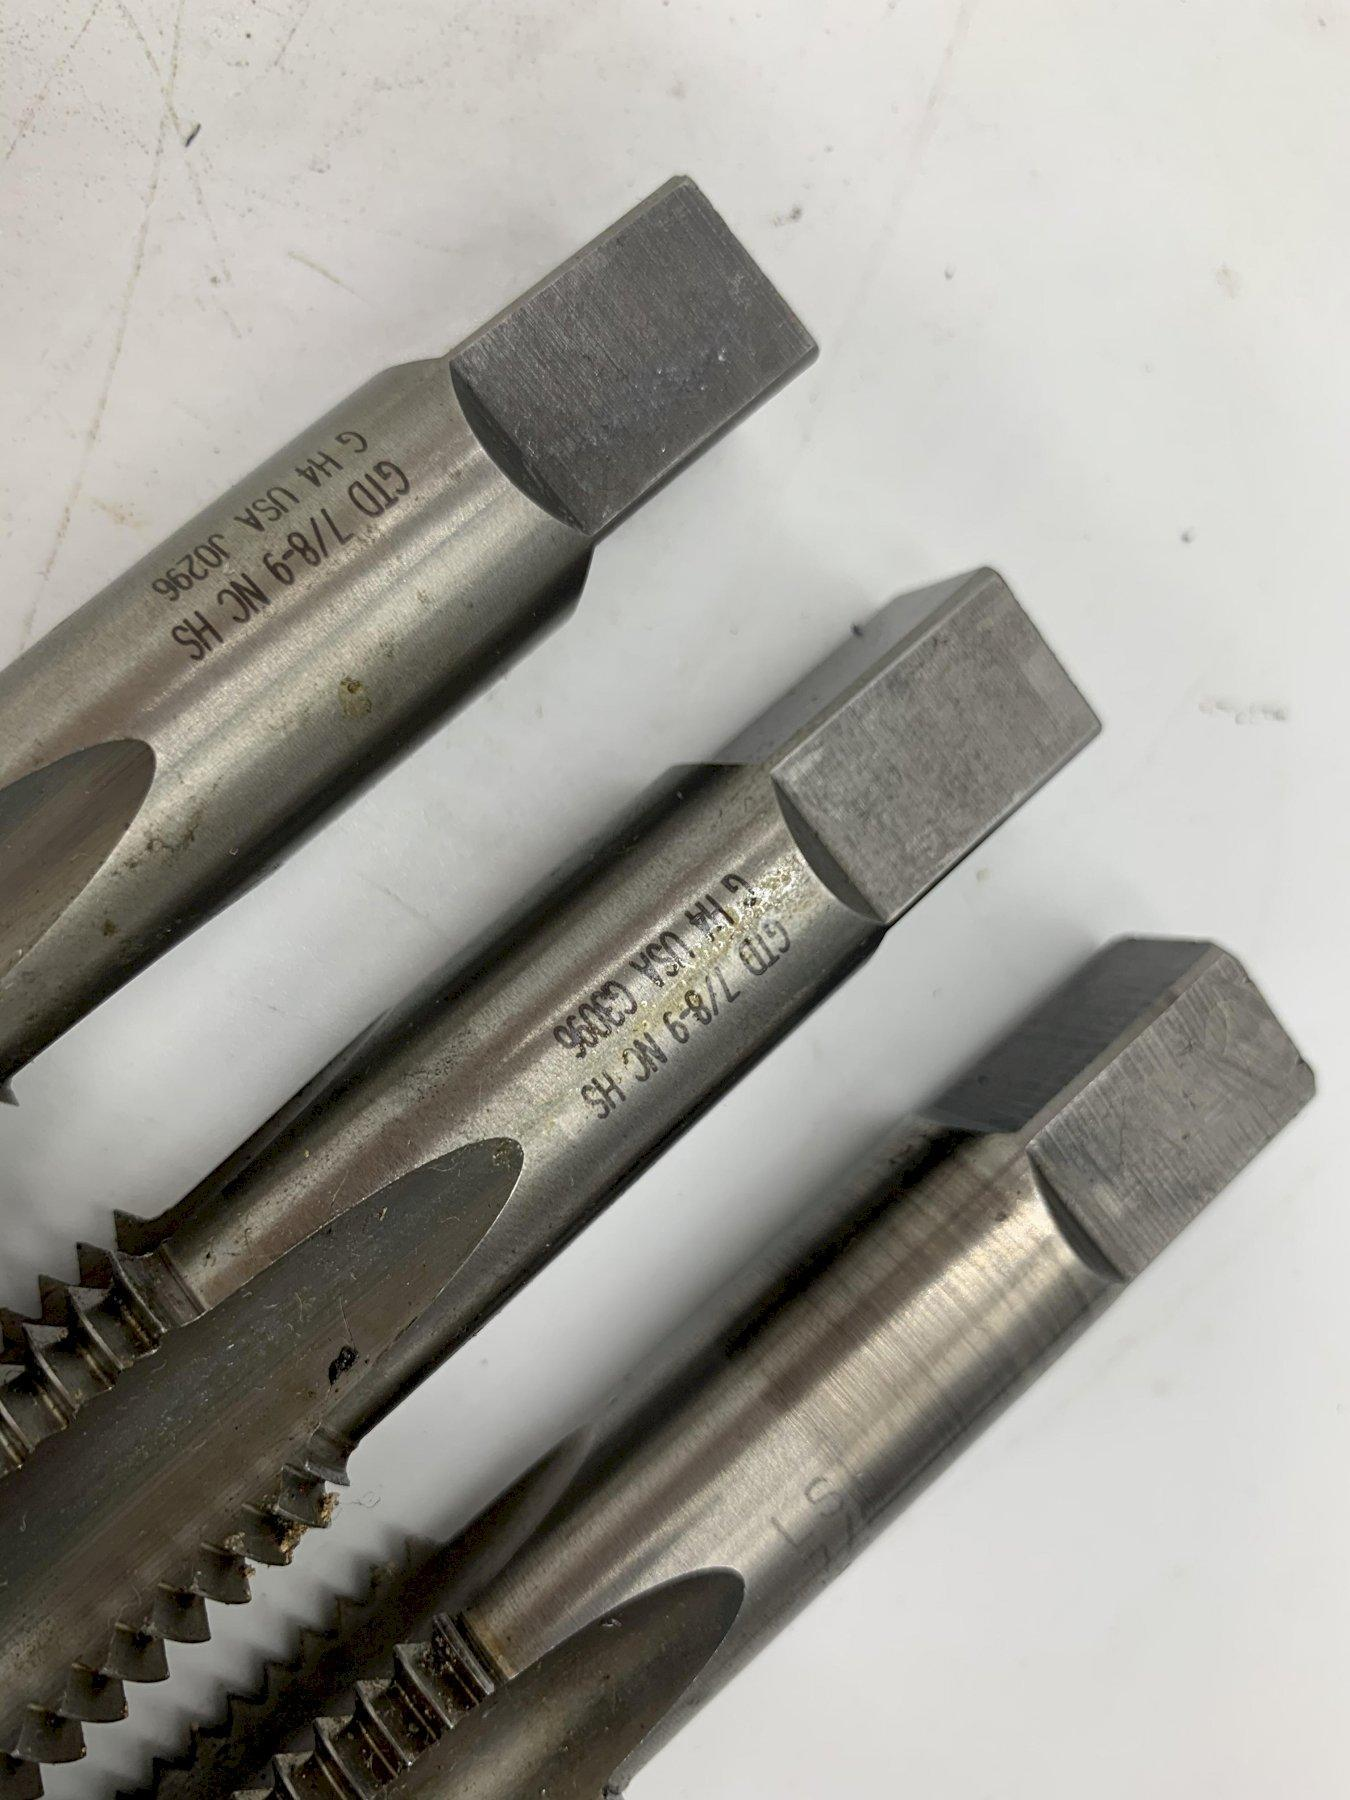 """7/8-9"""" NC-HS GTD 4 FLUTE TAP [QTY 3]  USA MADE STOCK #15530"""